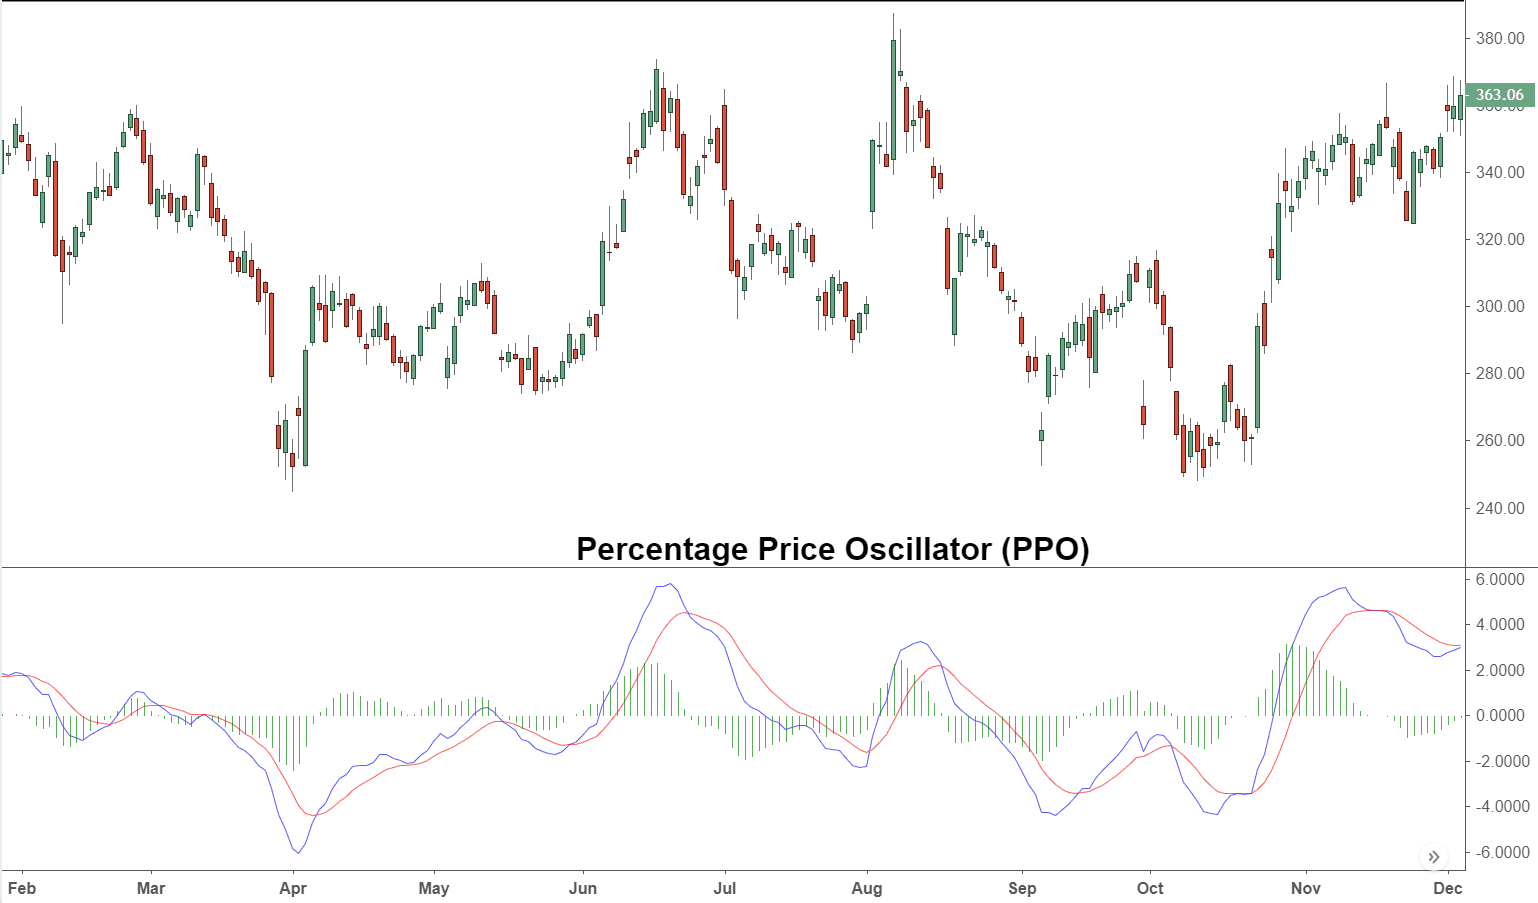 Percentage Price Oscillator – PPO Definition and Tactics